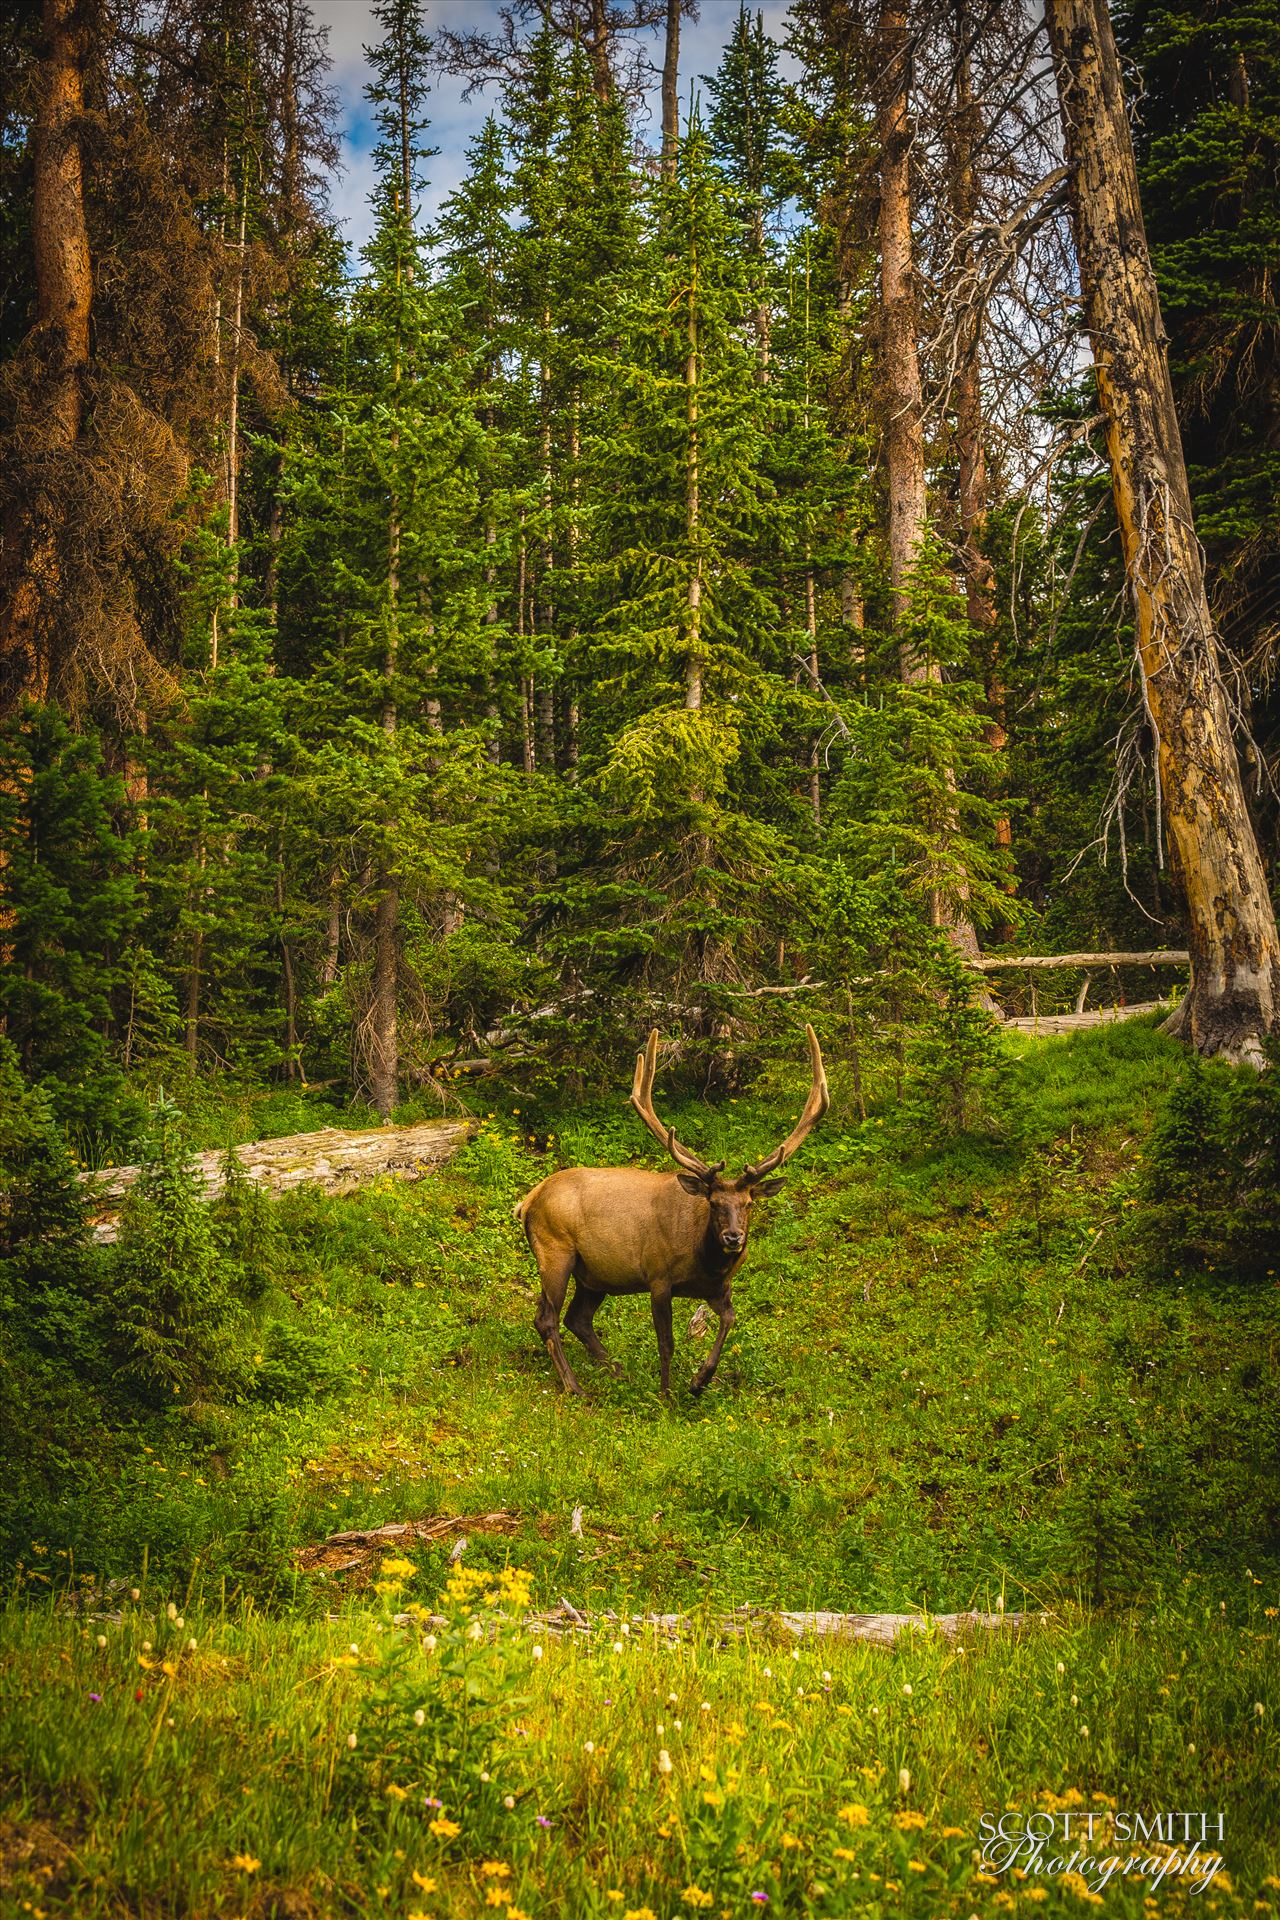 Elk in the Wild No 2 - A large buck enjoying a summer day in the Rocky Mountain National Park. by D Scott Smith